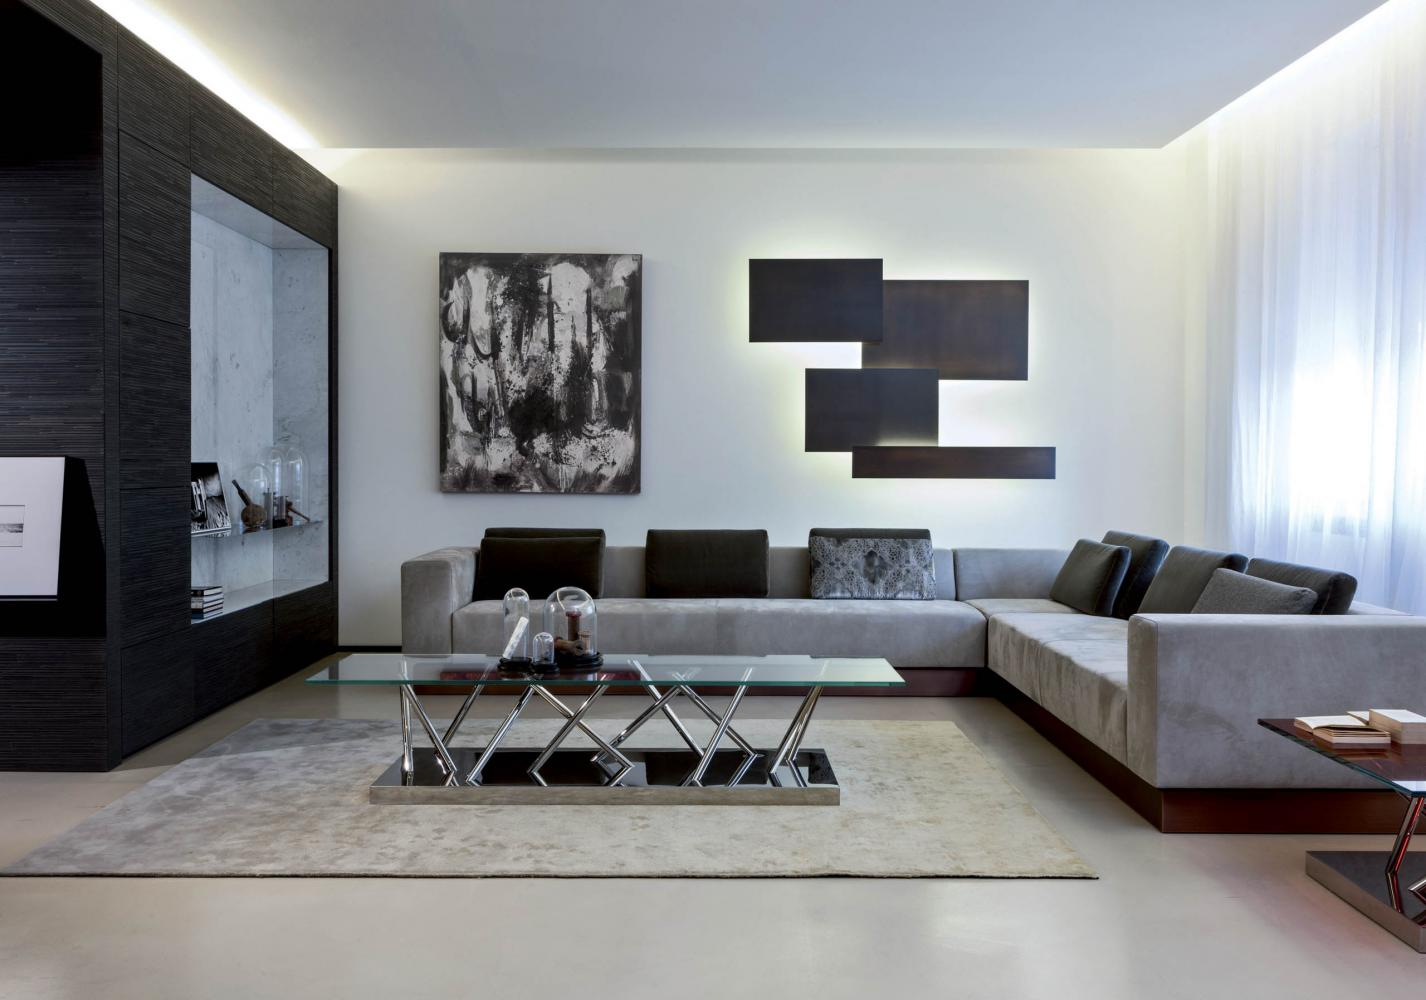 Custom made modern design wall panels with Decor carved wood texture